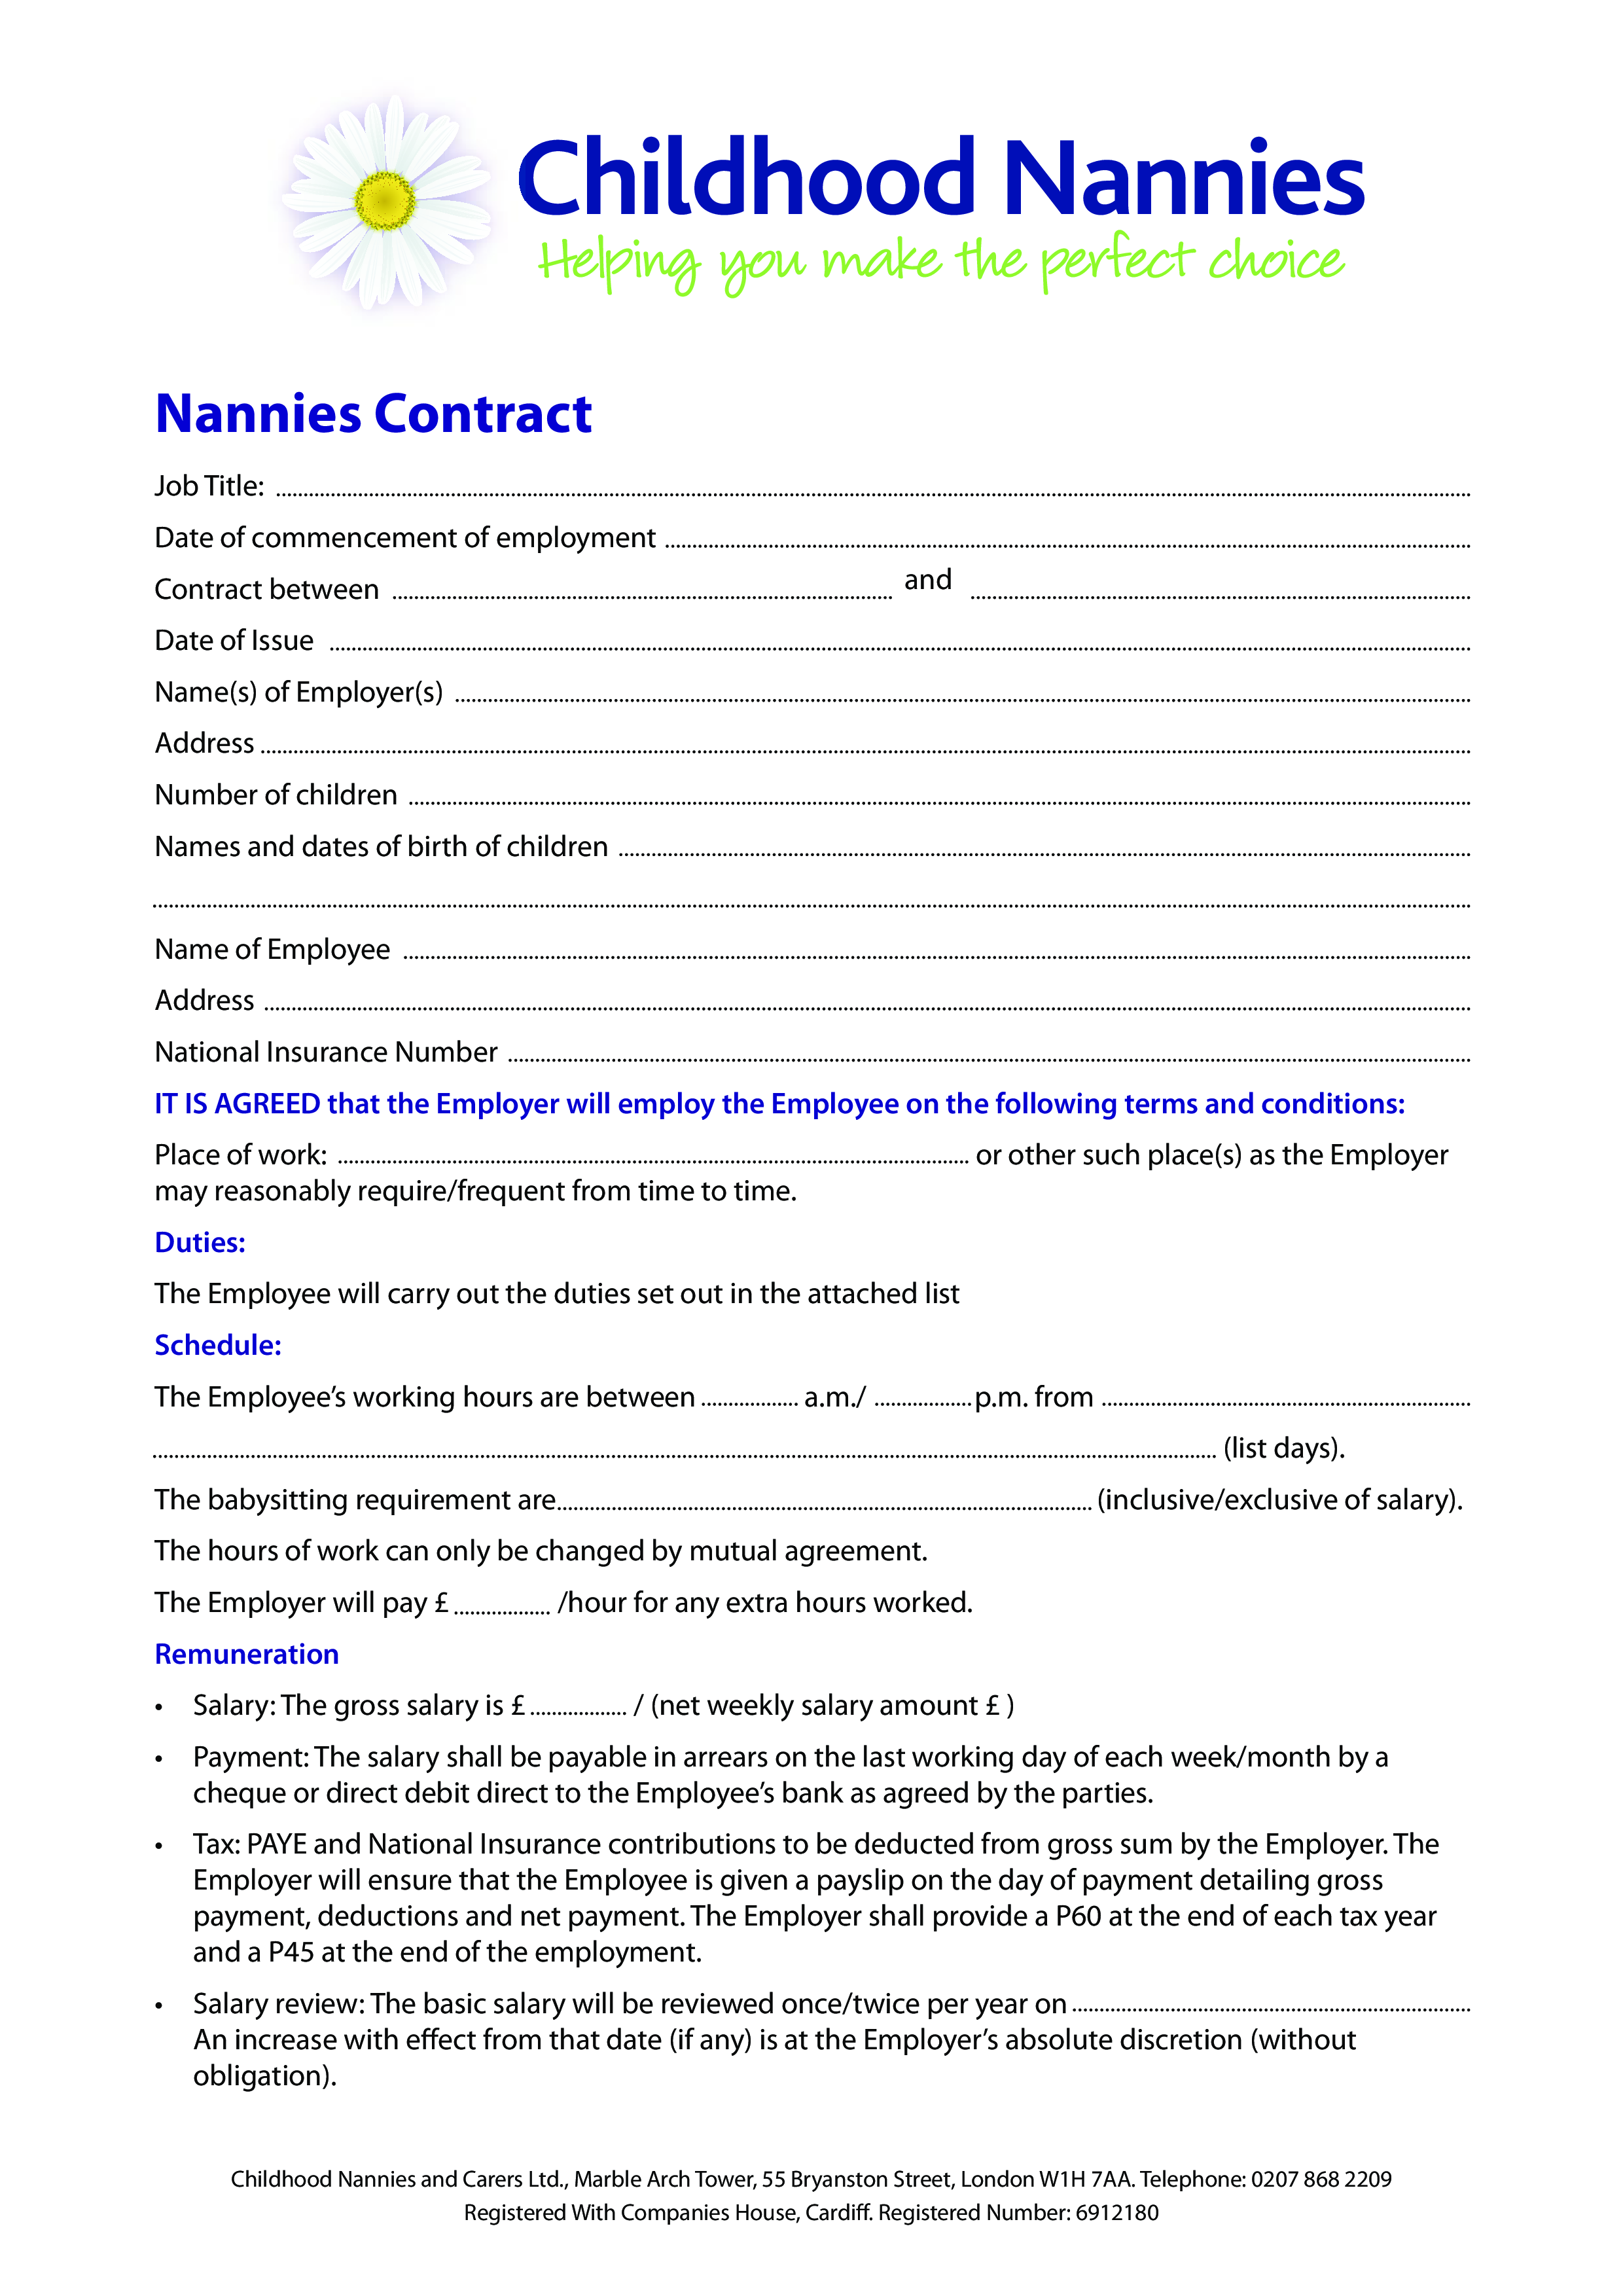 Free Childhood Nanny Contract | Templates at allbusinesstemplates.com